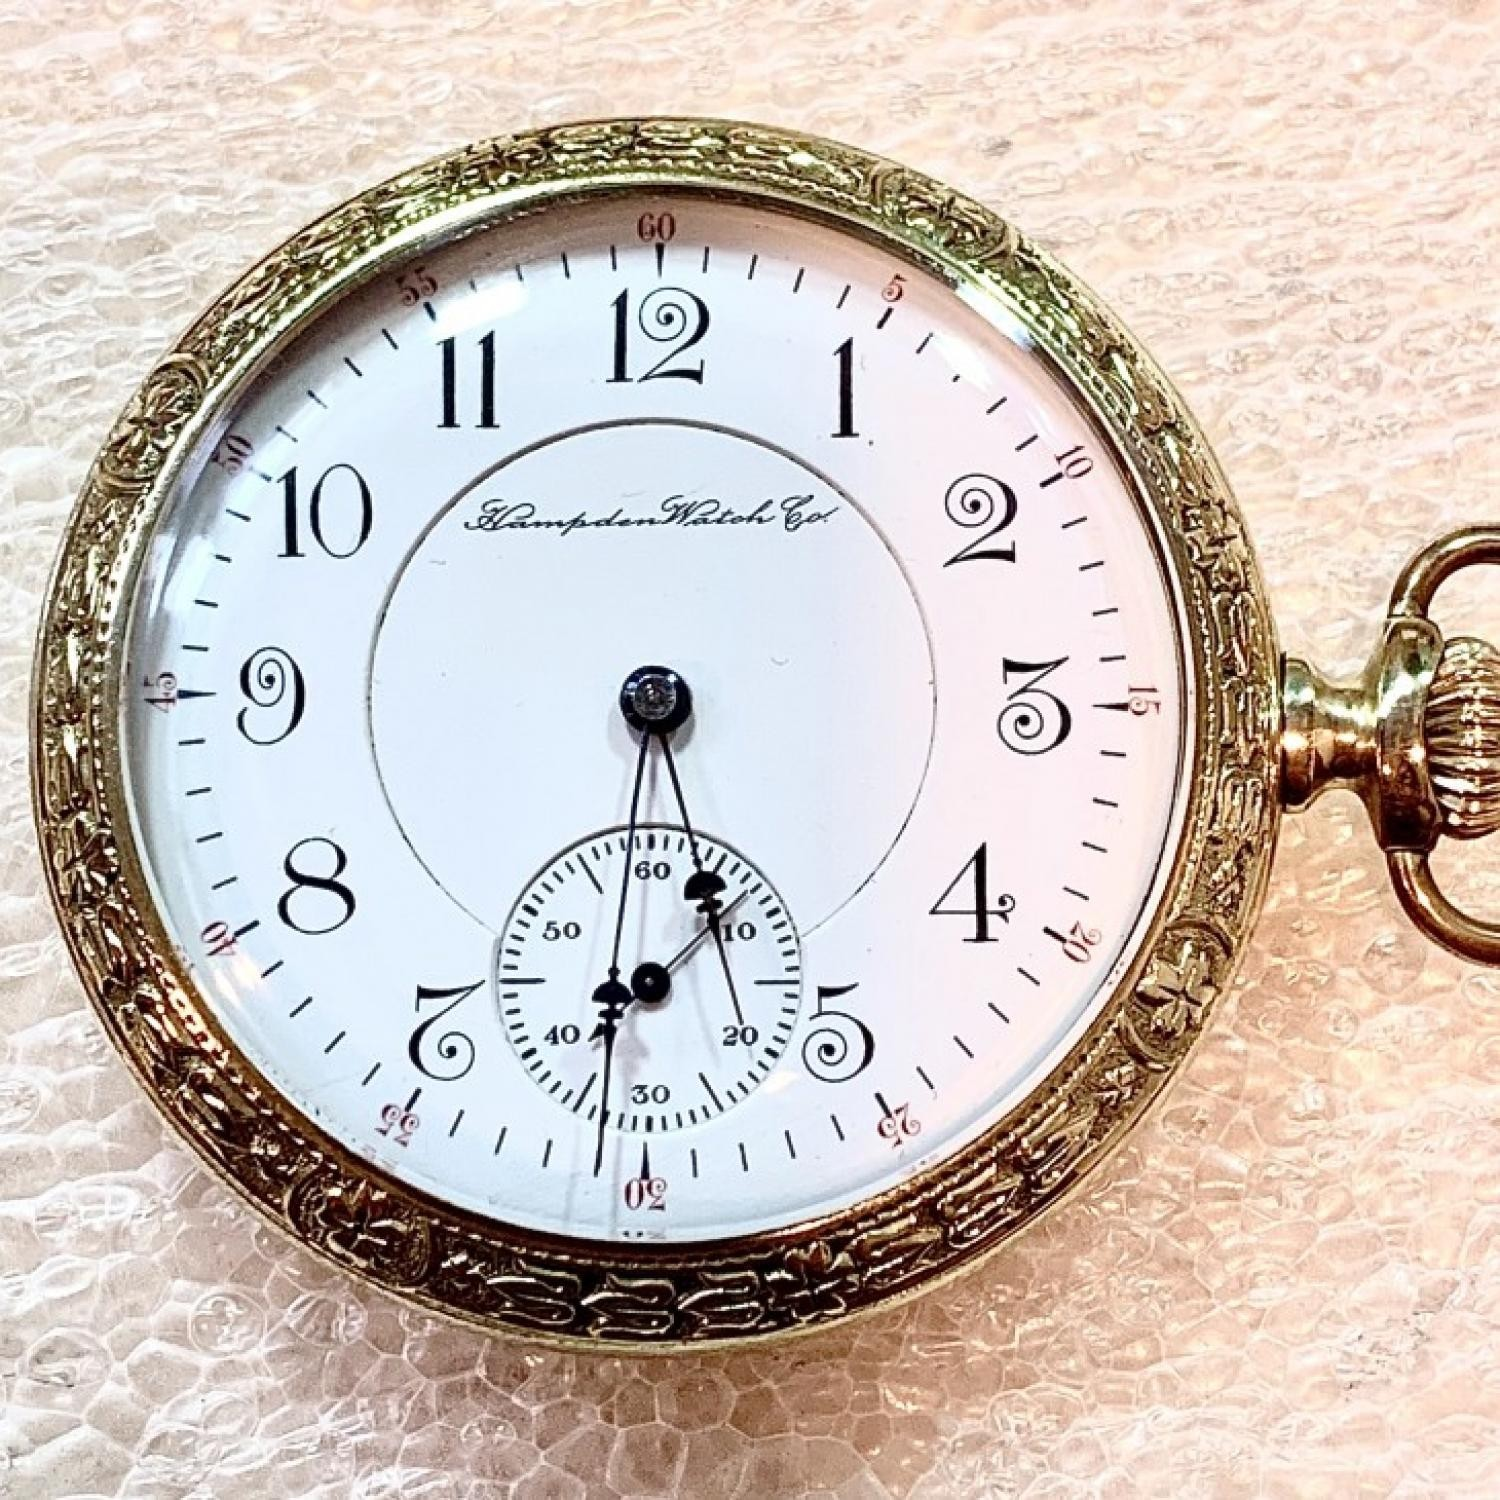 Image of Hampden Wm. McKinley #1792990 Dial